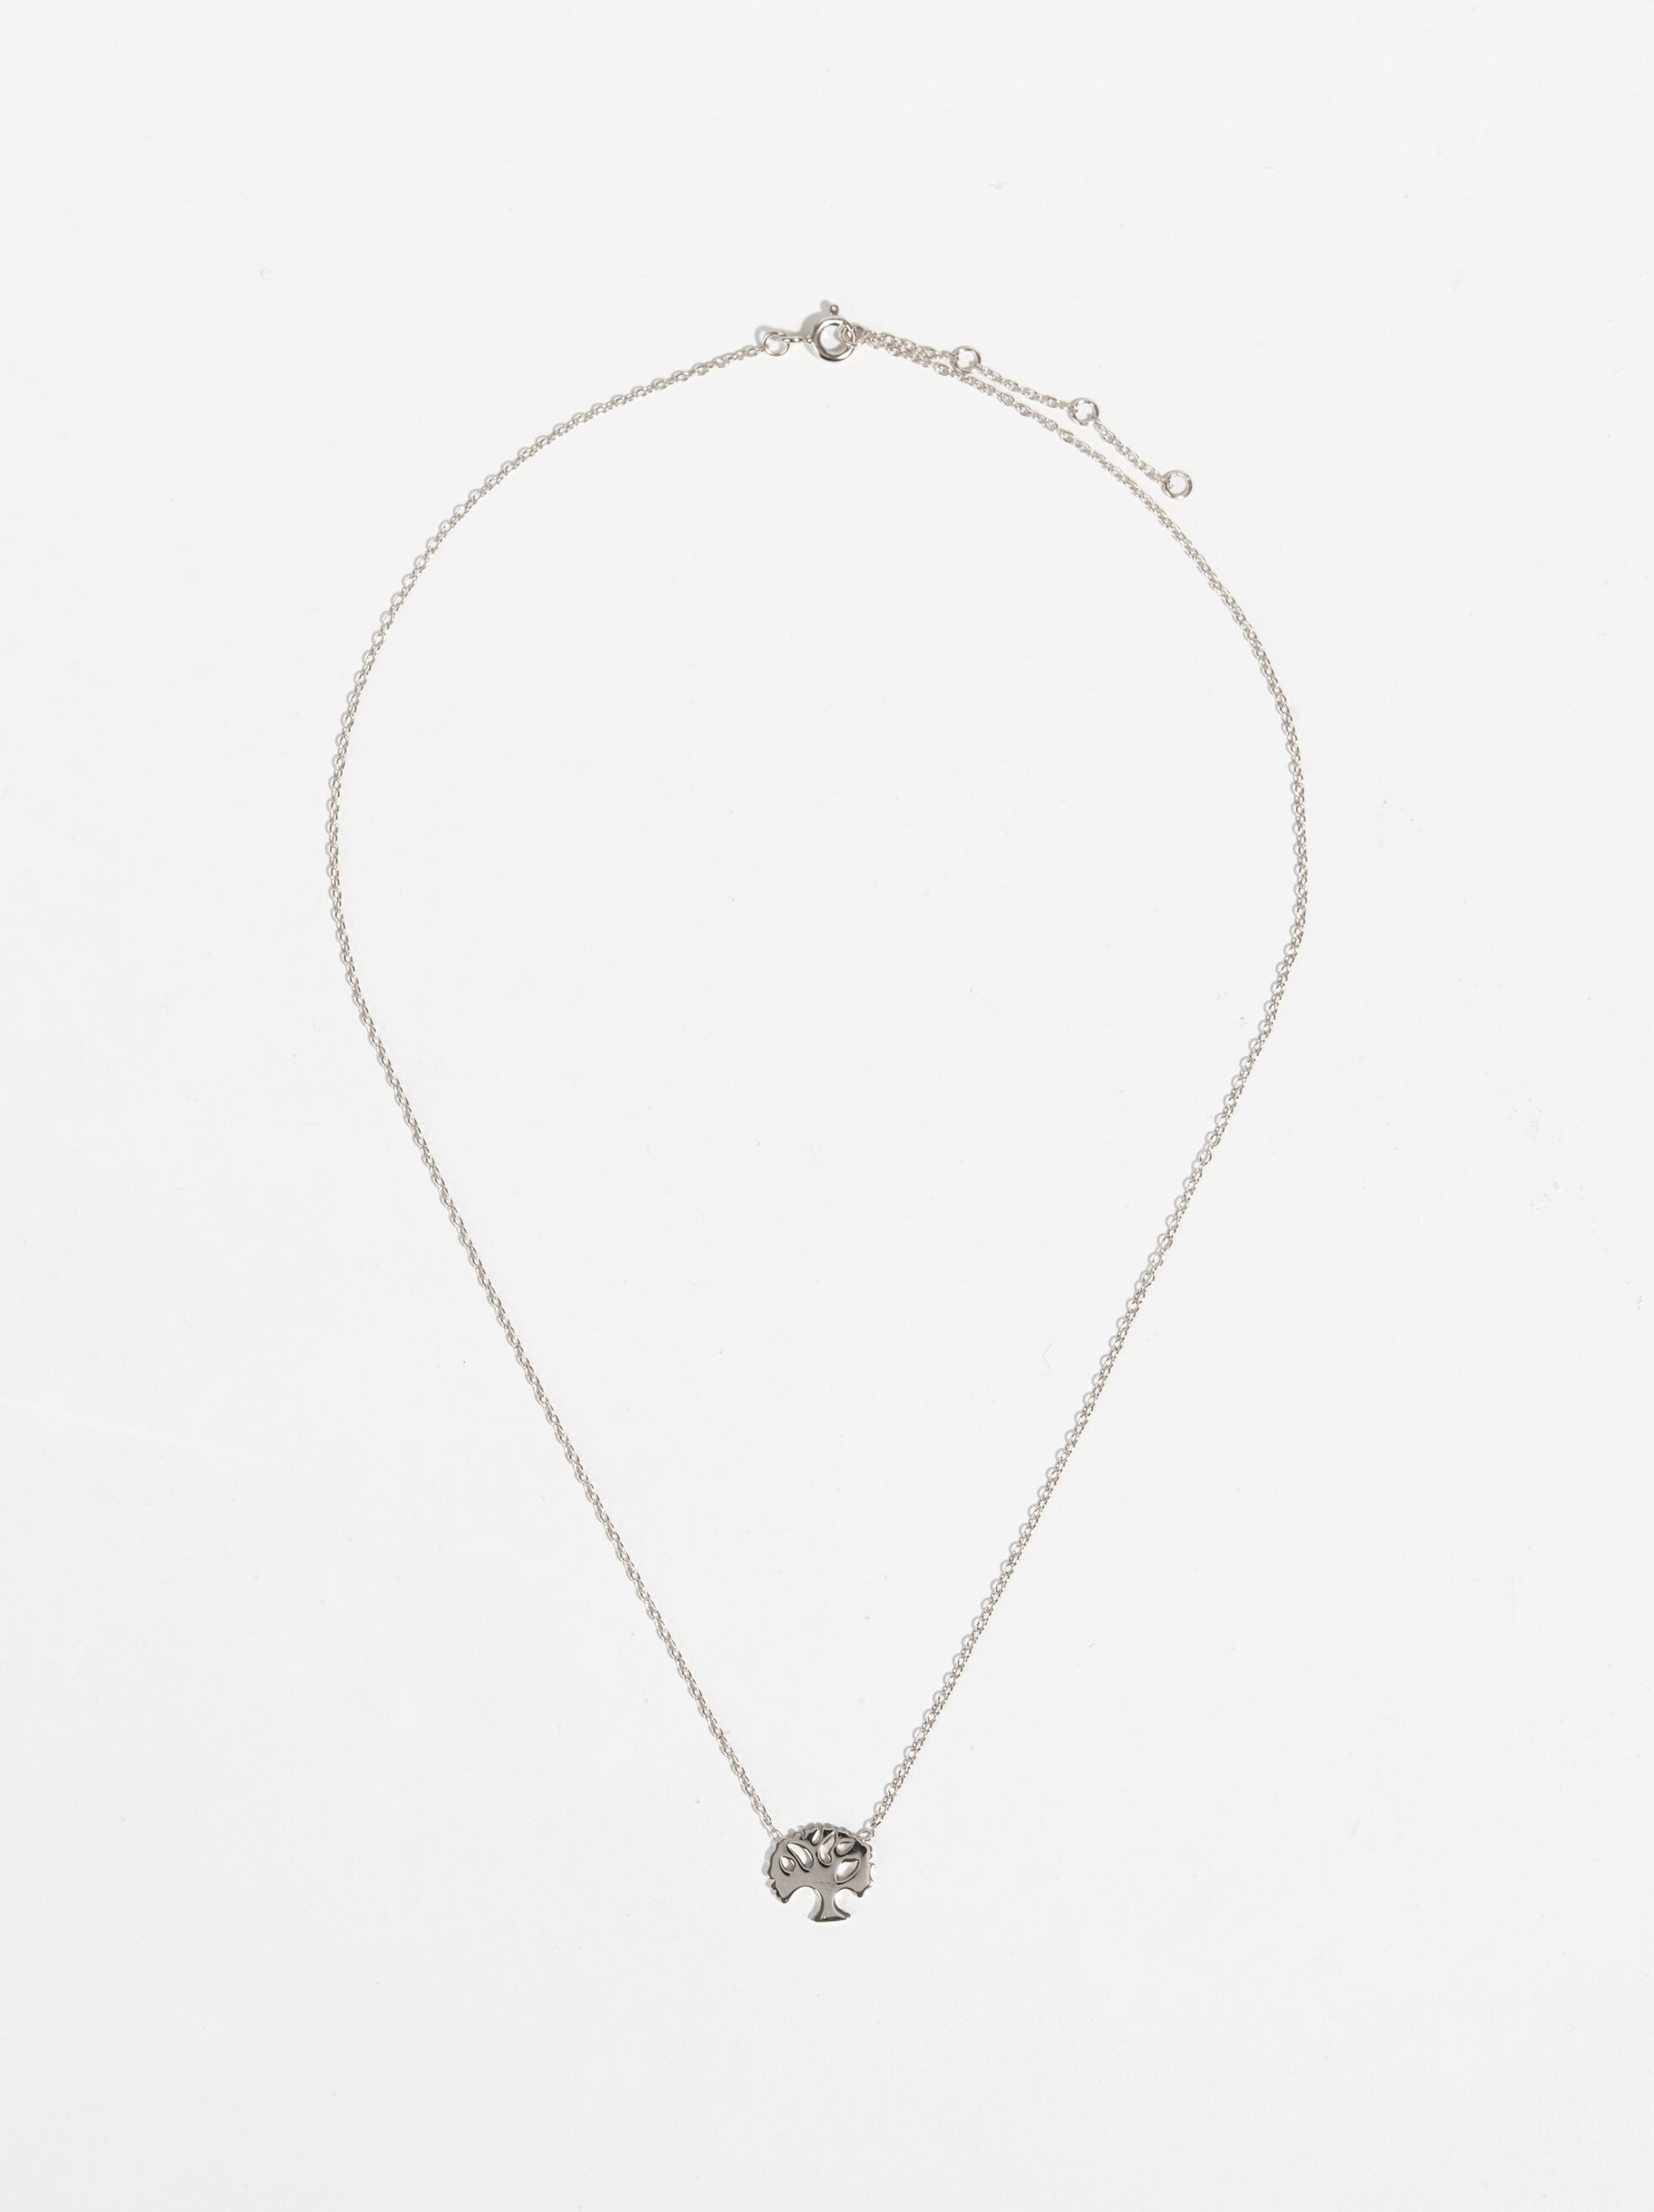 Short 925 Silver Tree Necklace, Silver, hi-res